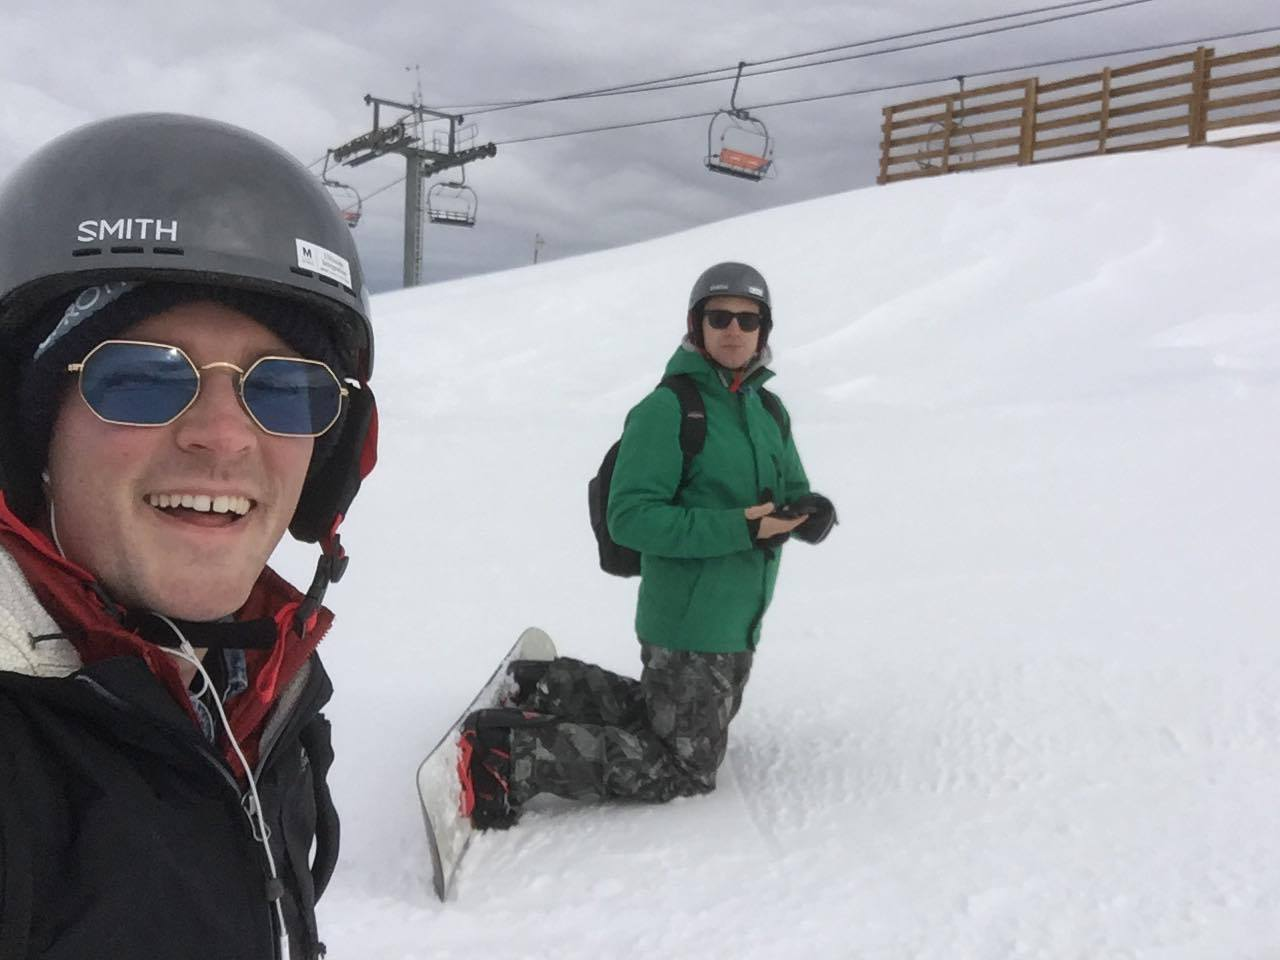 Zach and Isaac snowboarding